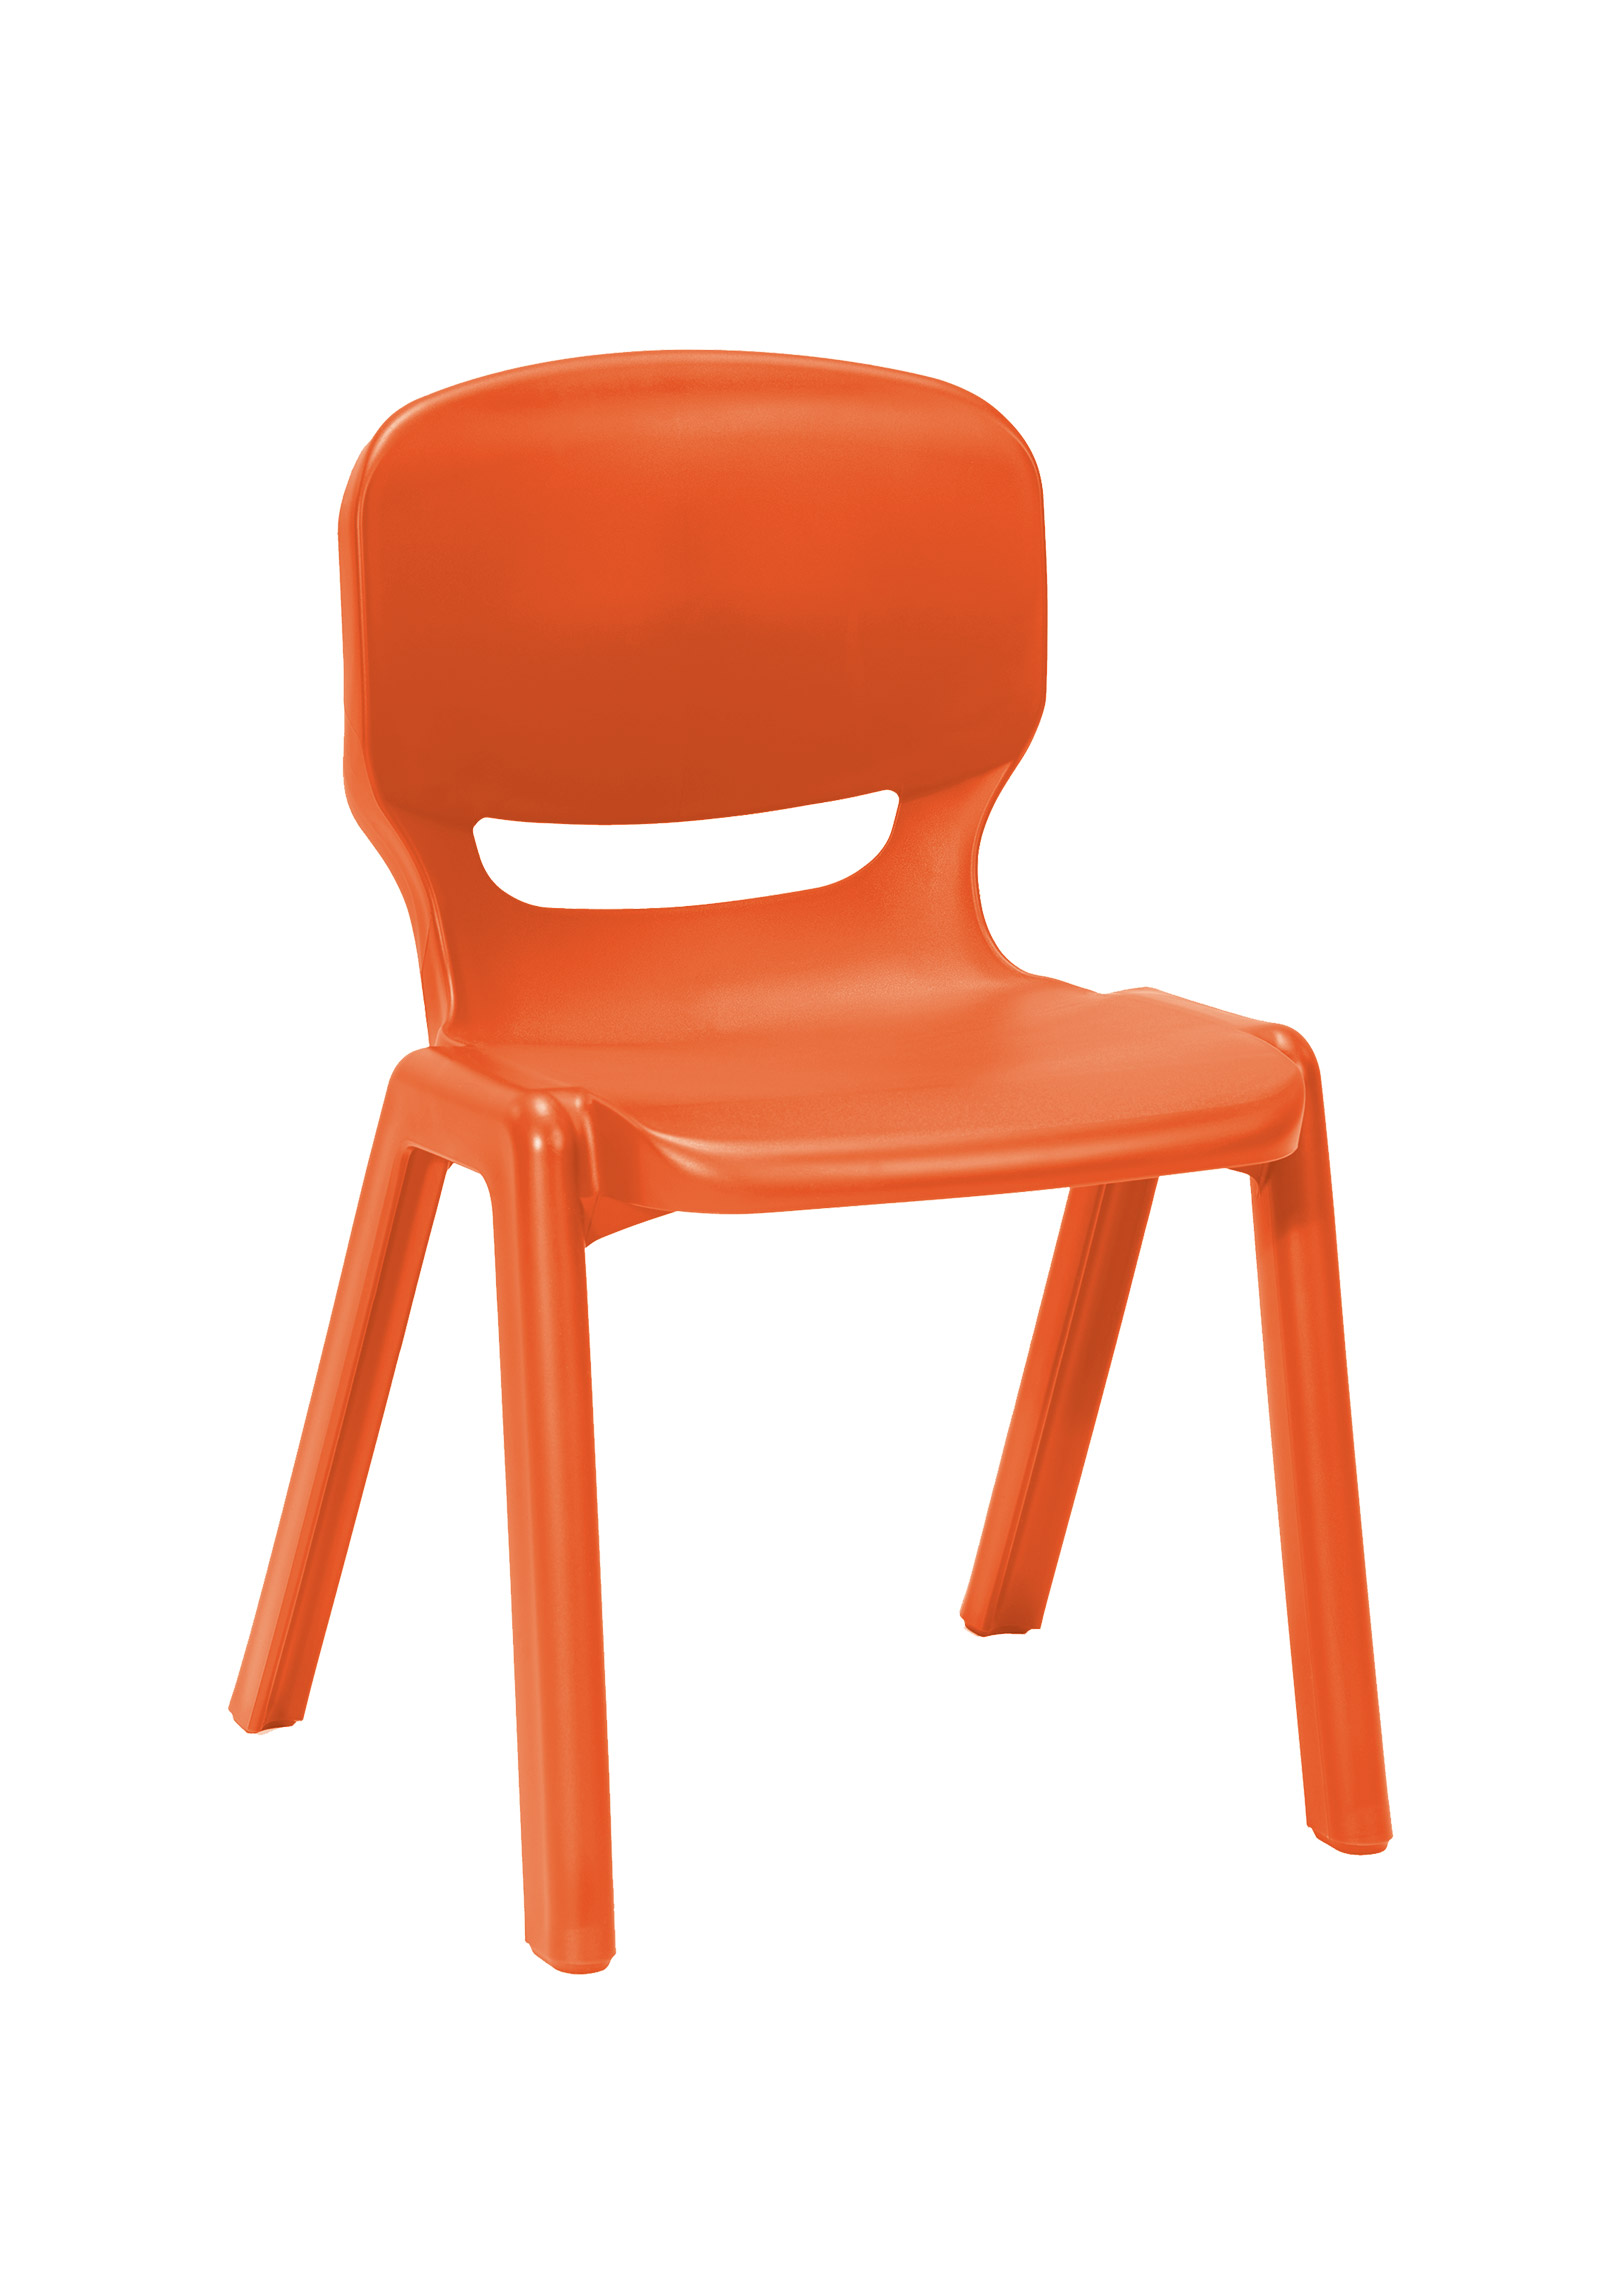 Ergos Versatile One Piece Educational Chair For Age 14 16 Box Of 4 Orange